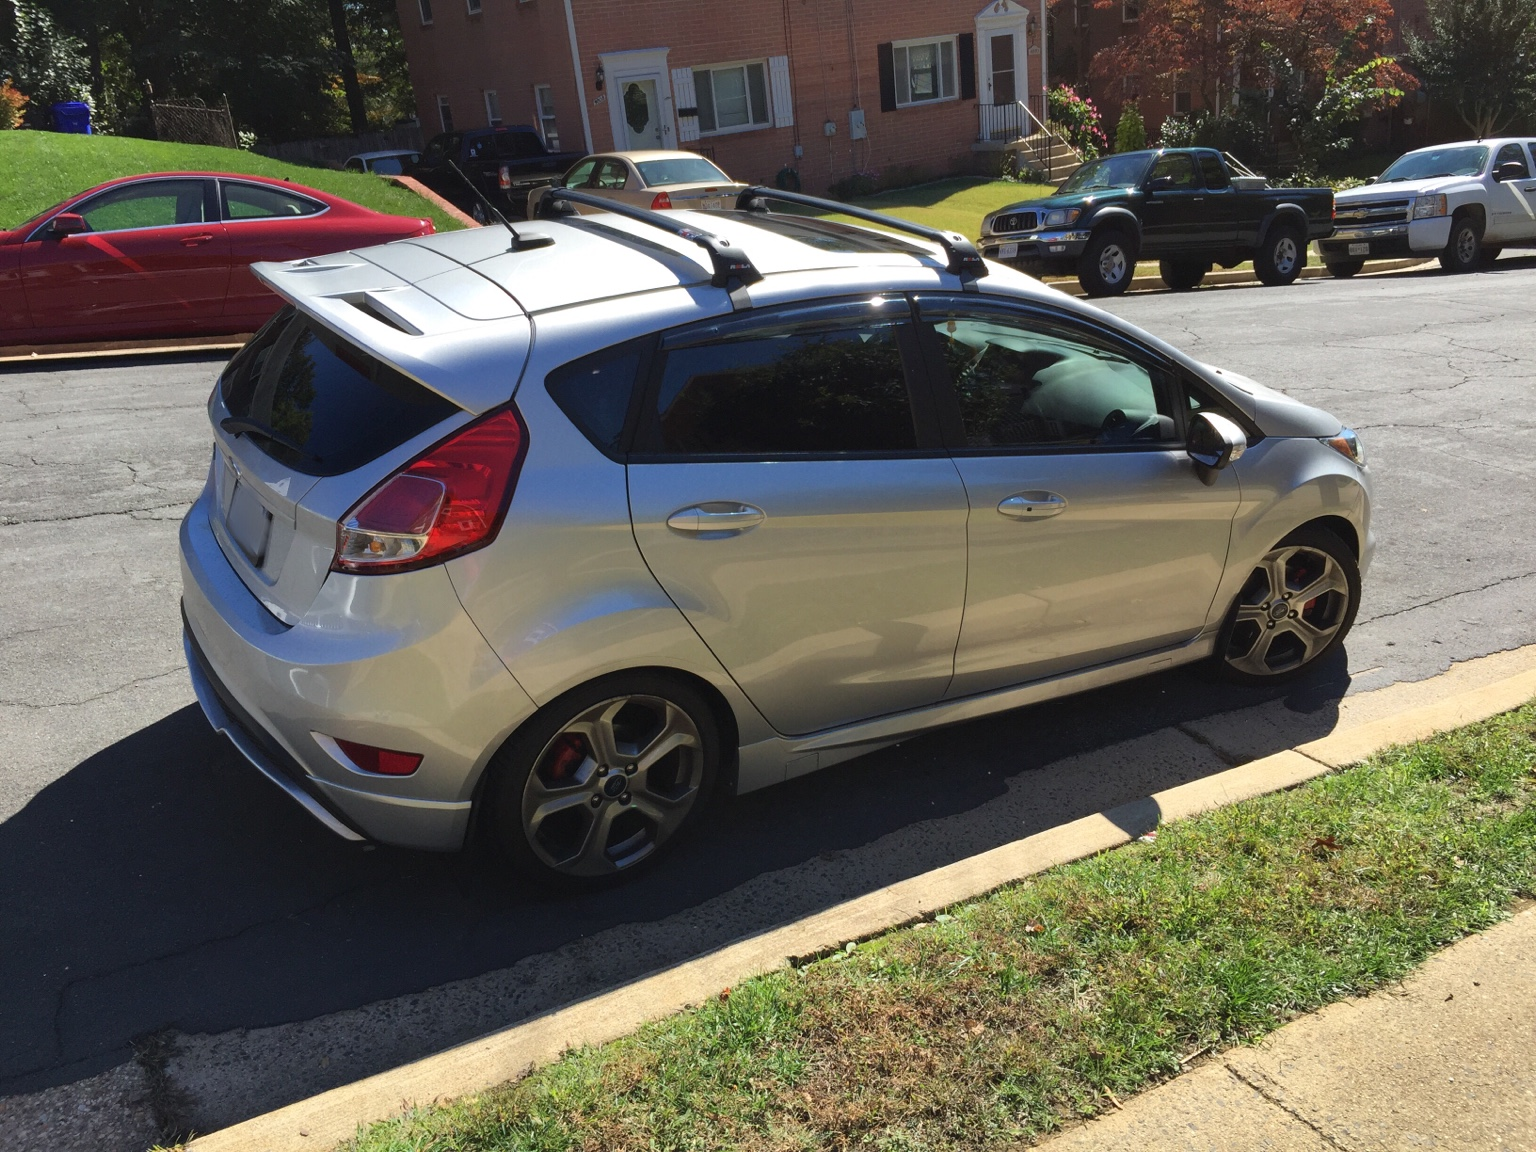 Ford Fiesta Roof Rack >> Ford Fiesta Roof Racks South Africa 12 300 About Roof